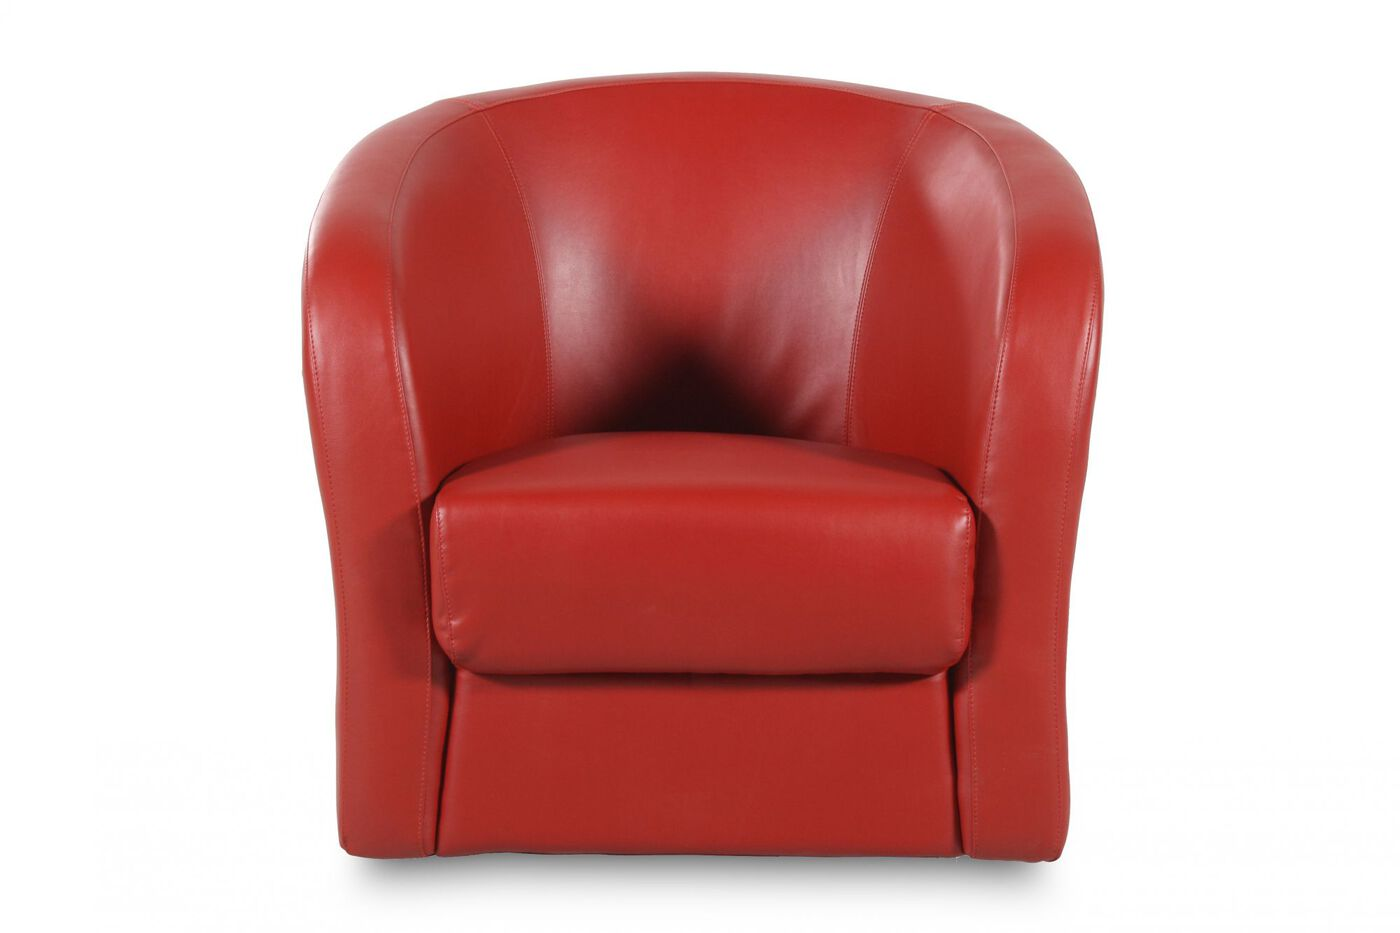 Wonderful Chair And A Half With Ottoman Red Boulevard Swivel Inside Inspiration Decorating